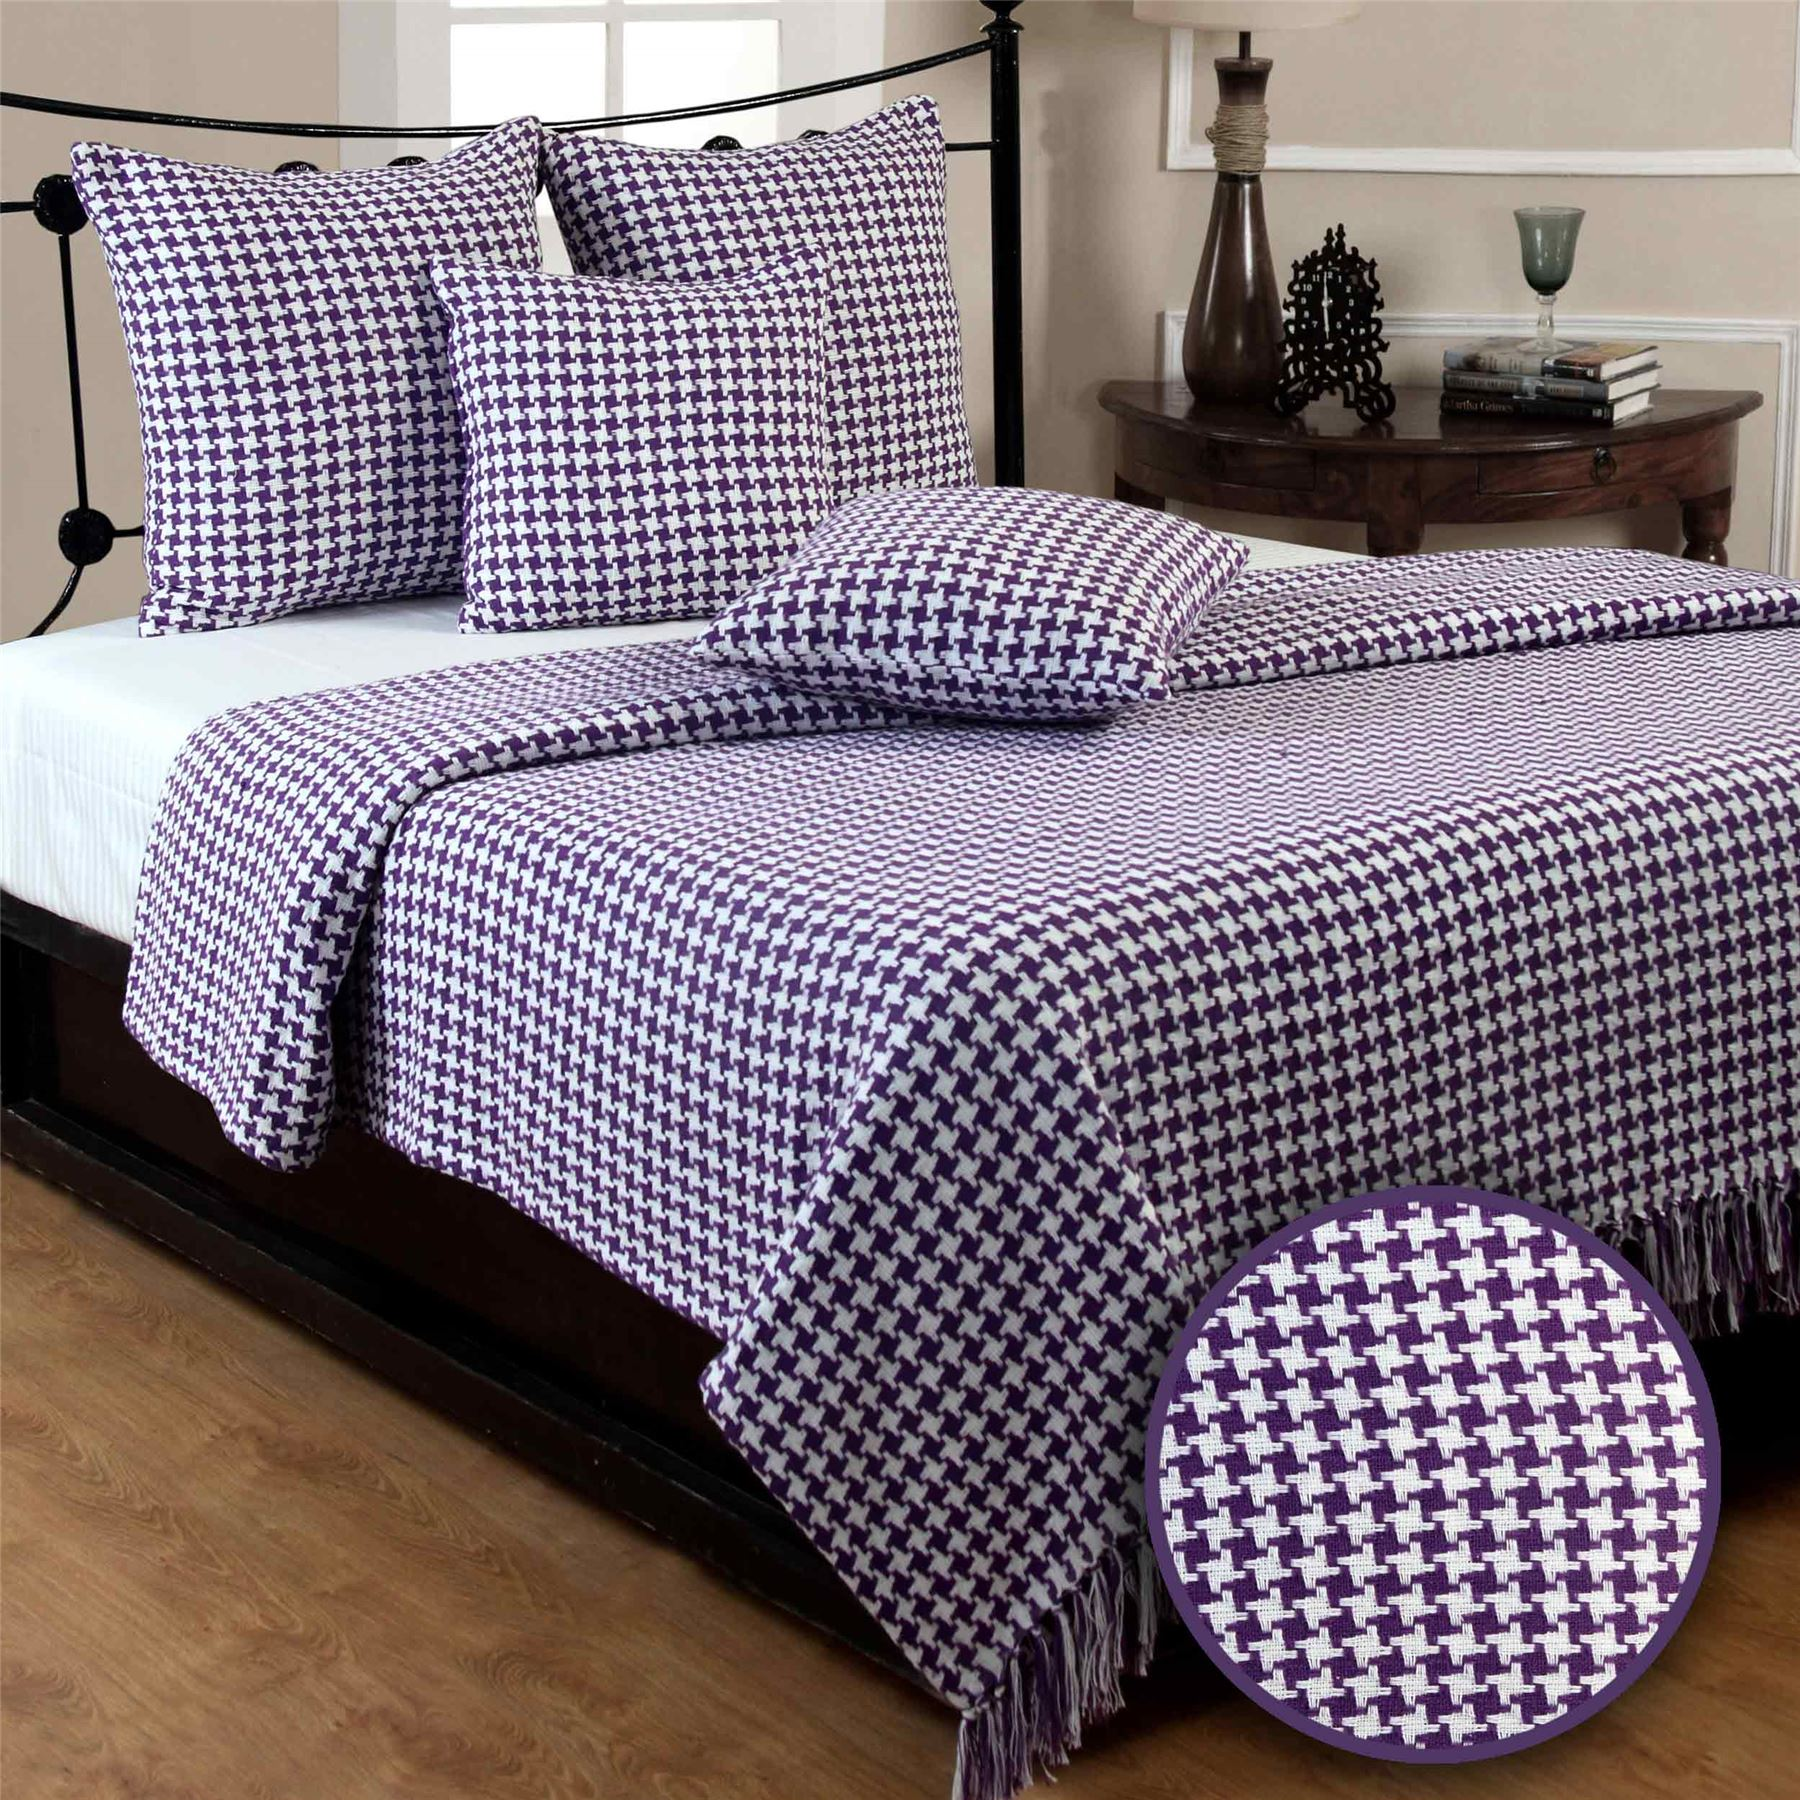 xl sofa throws heavy duty houndstooth cotton check extra large bed